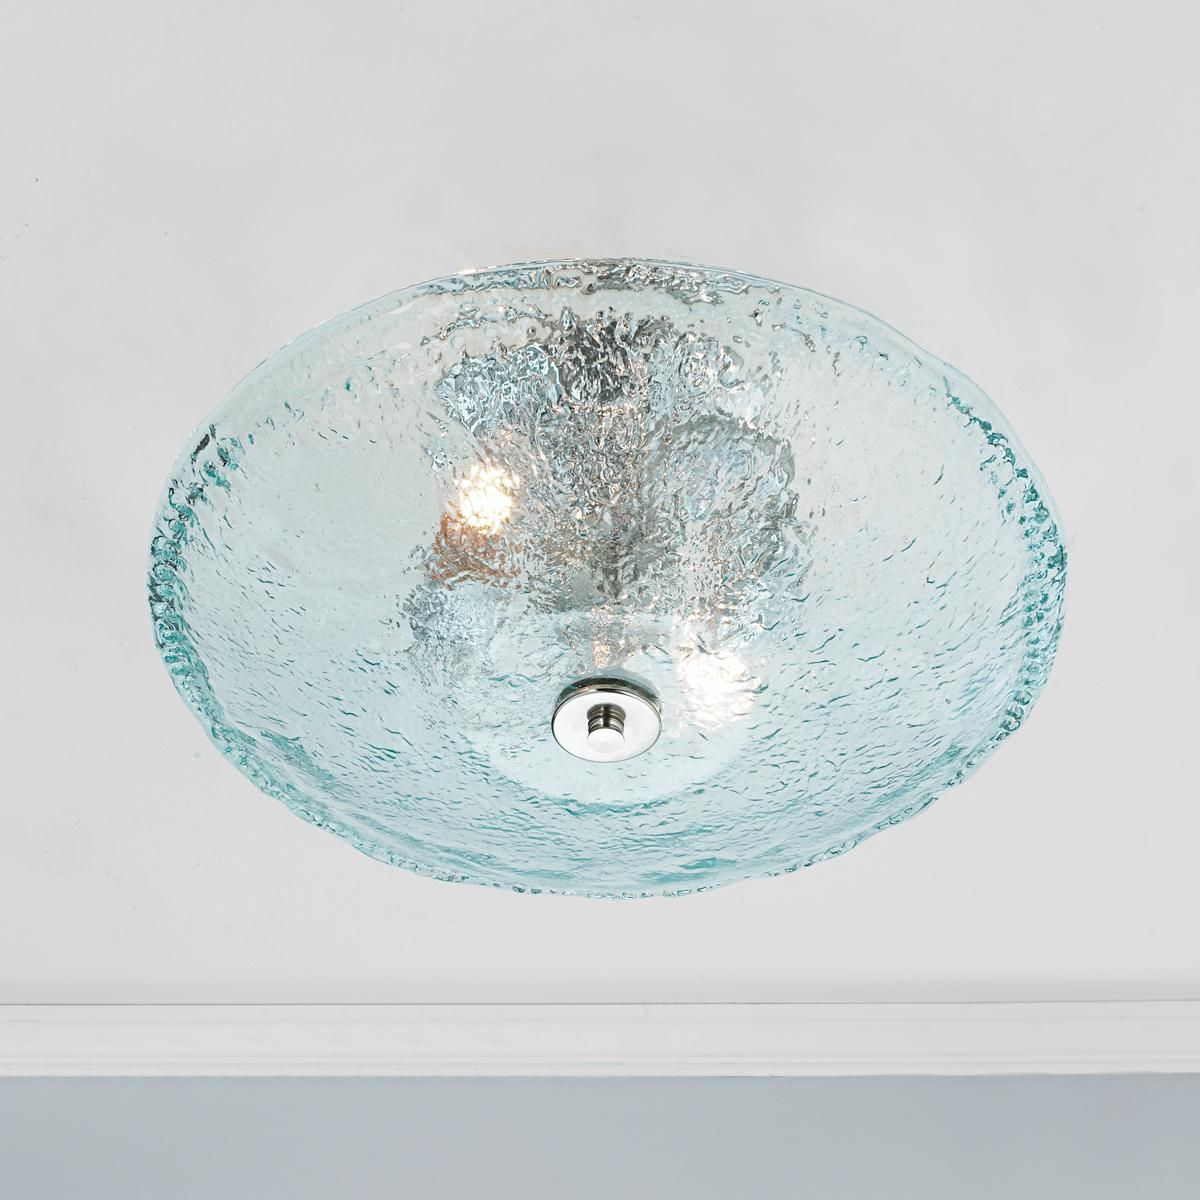 recycled bottle glass bowl ceiling light